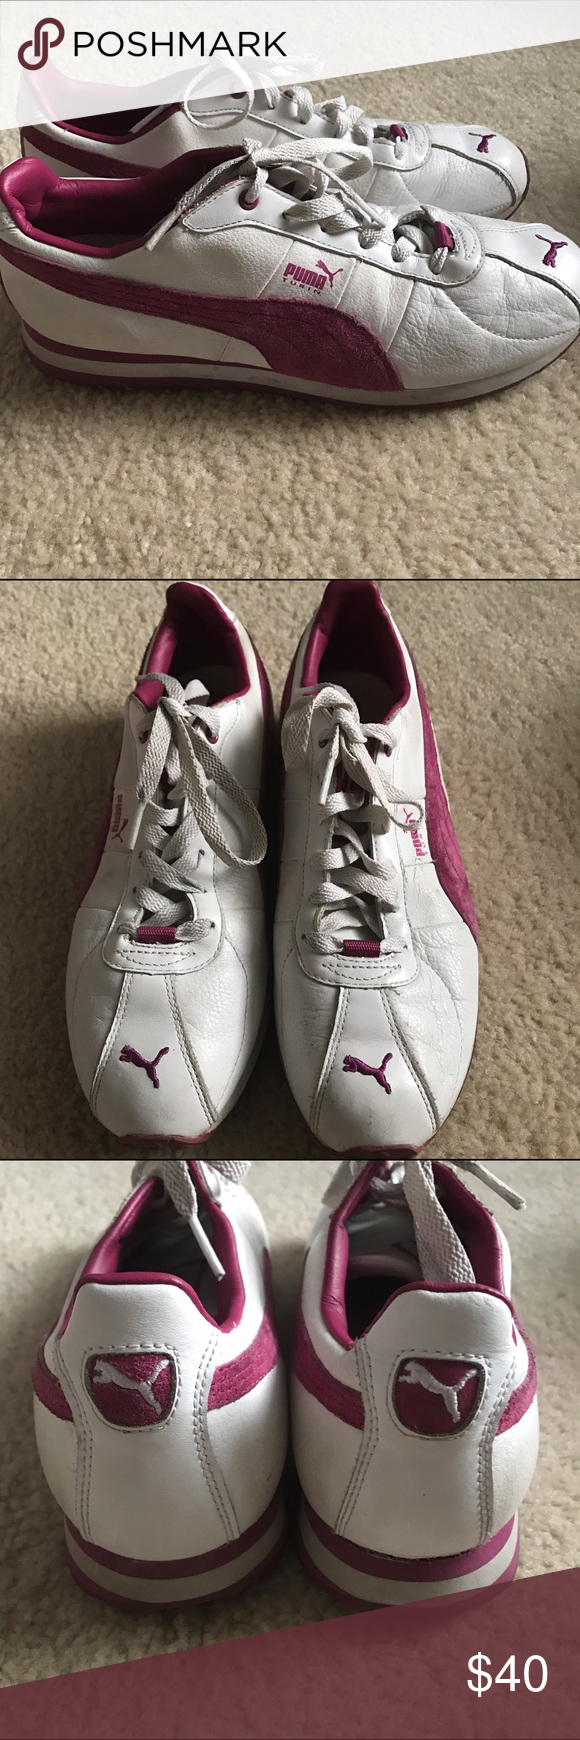 PUMA Sneakers PUMA Pink and White Retro Leather Sneakers. Gently Used. Small Marks as Seen in Pictures. Very Comfortable. Puma Shoes Sneakers